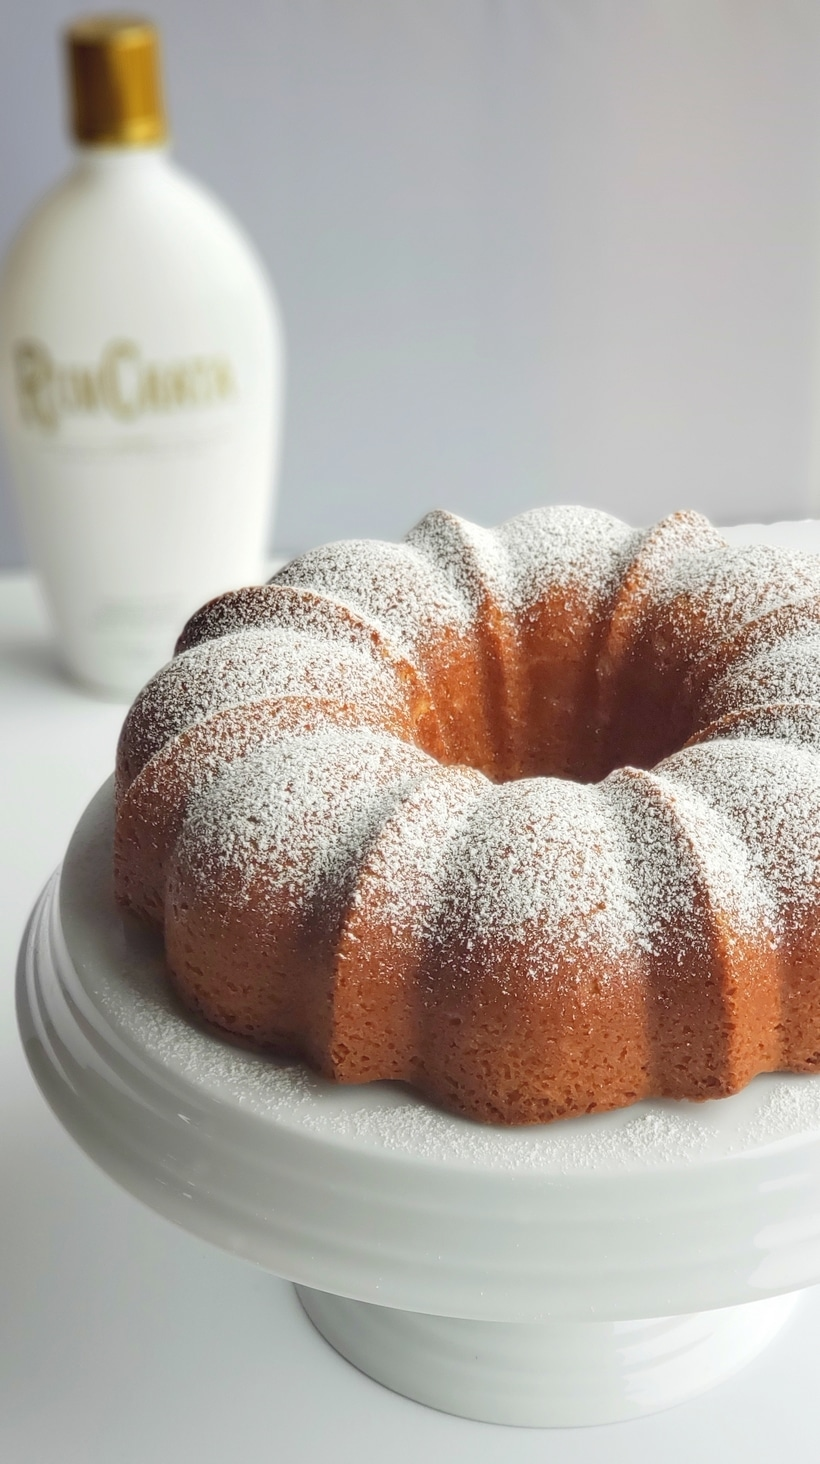 RumChata Bundt Cake highlights all the best flavors of RumChata liqueur ~ a cream flavored rum made with cinnamon and vanilla. The finished cake has a pound cake texture and tastes like a snickerdoodle cookie! #noblepig #rumchata #rumchatarecipes #bundtcake #cundtcakerecipes #yellowcake #poundcake #easycakerecipe #rumcake #rumcakerecipe